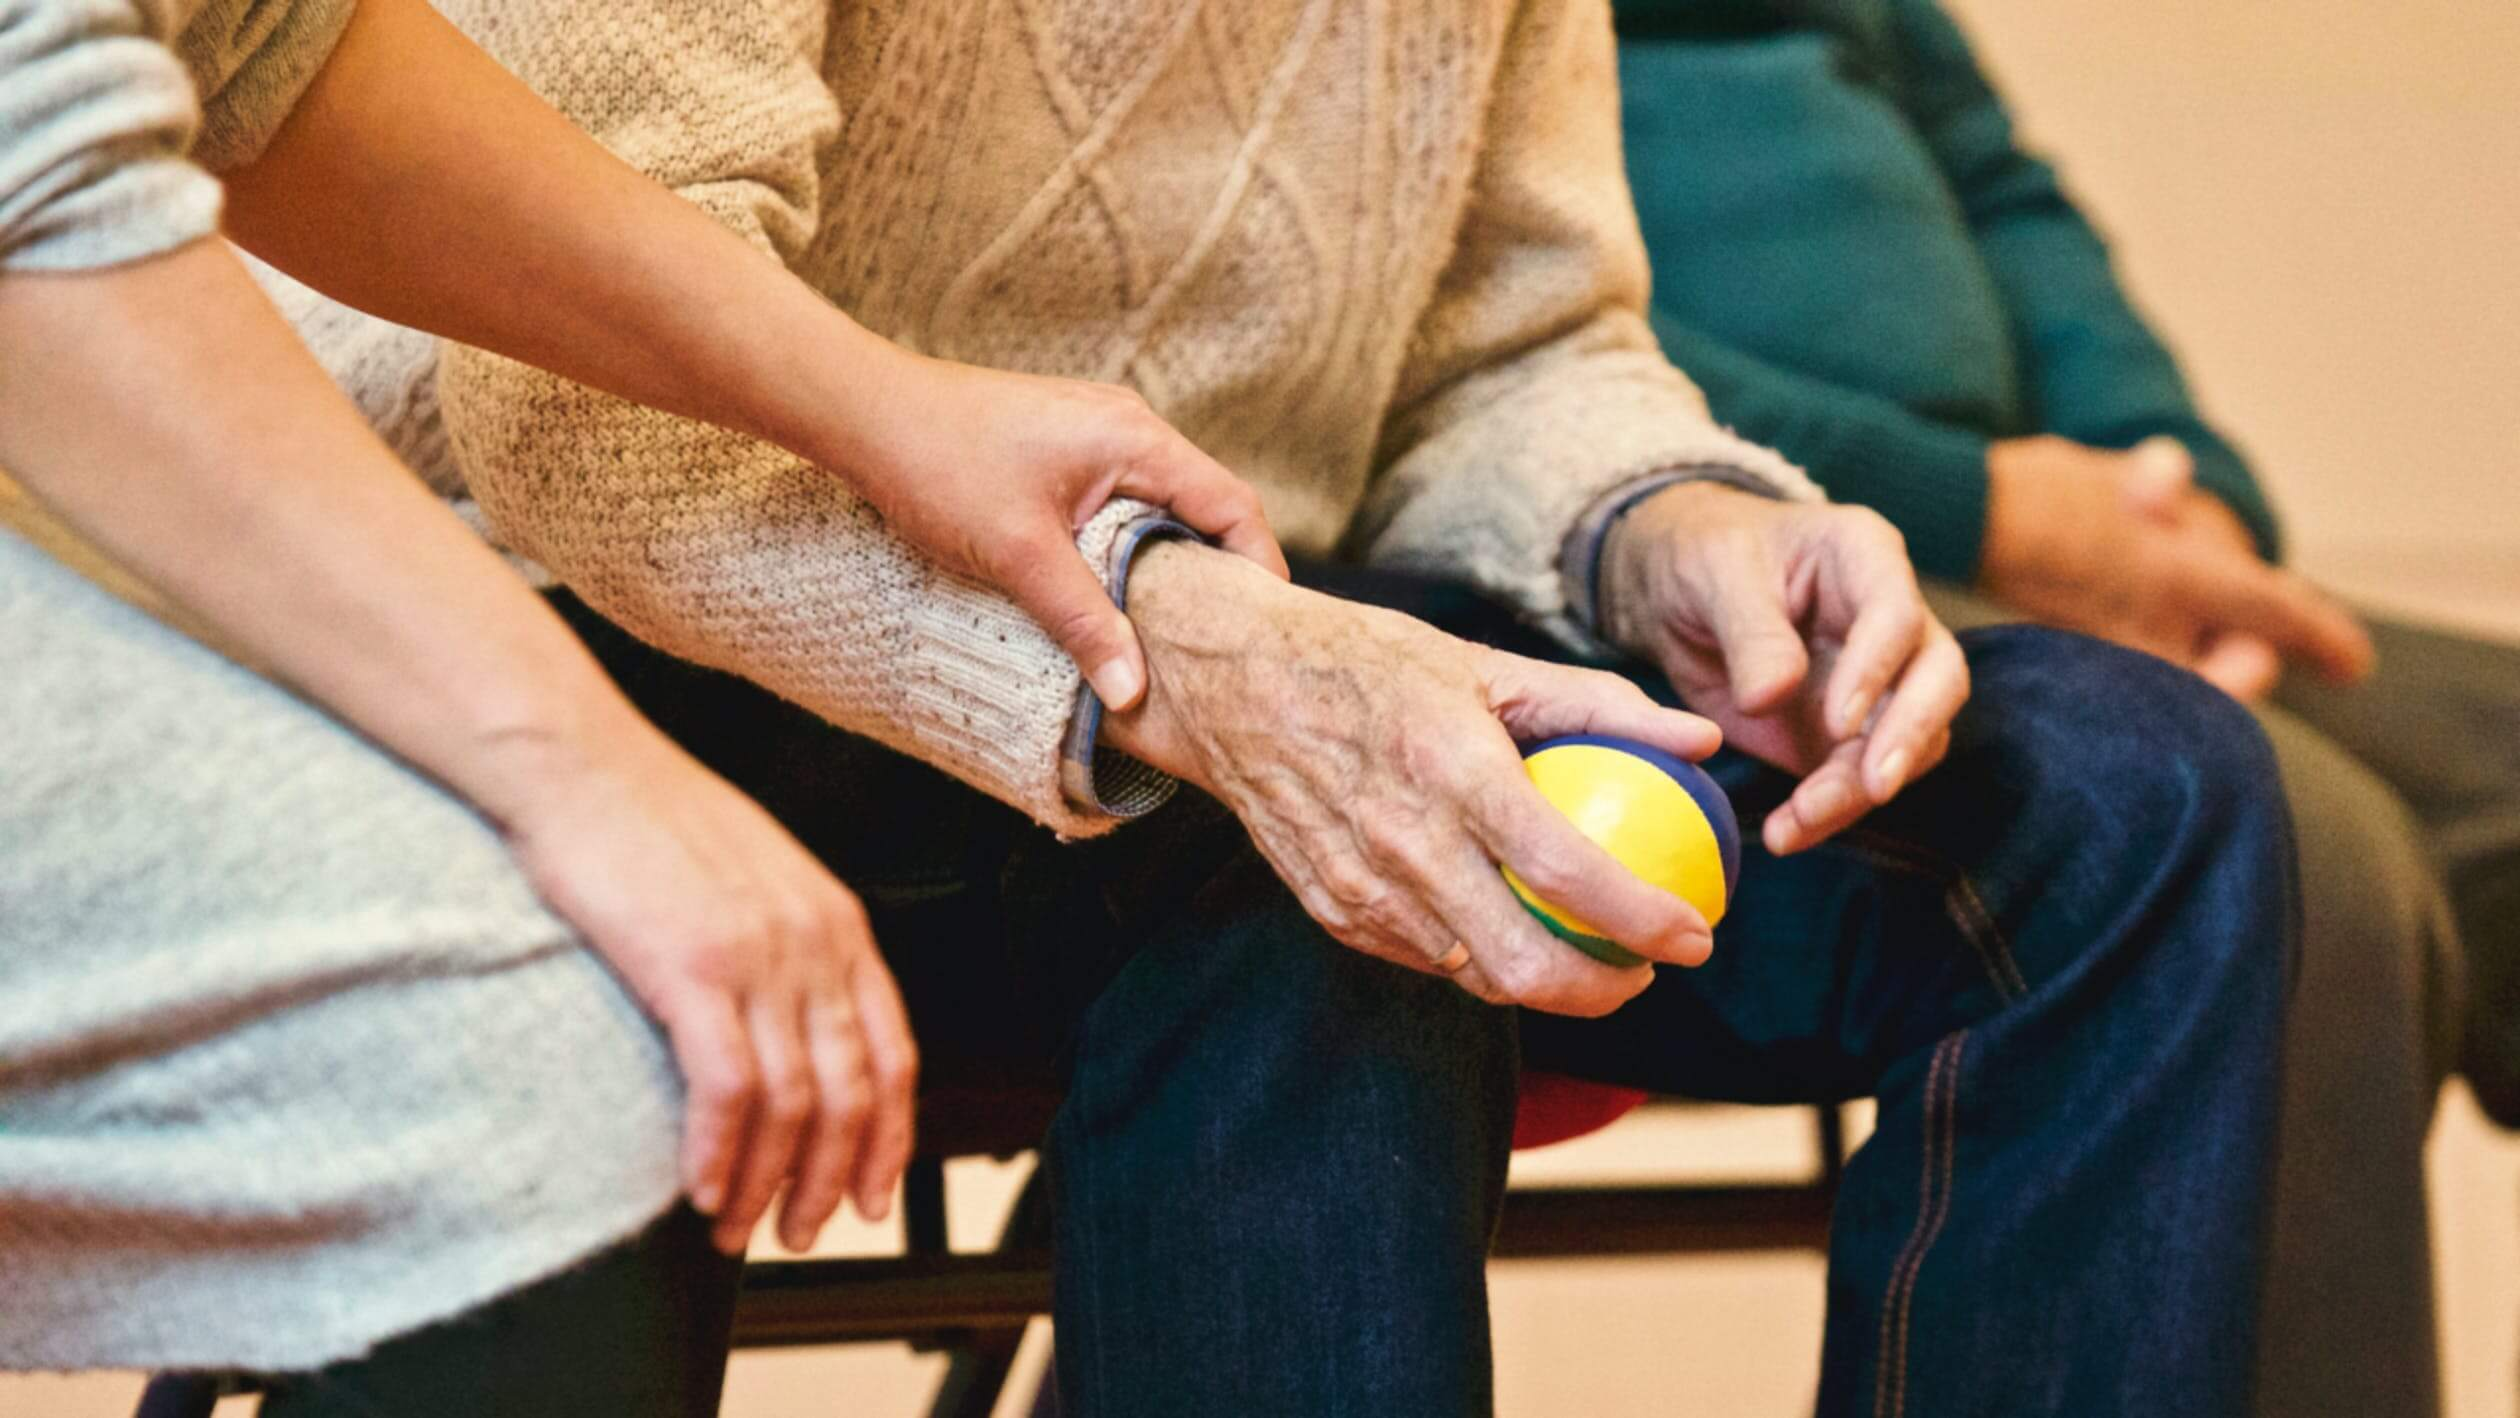 A man with arthritis working on his hand eye coordination